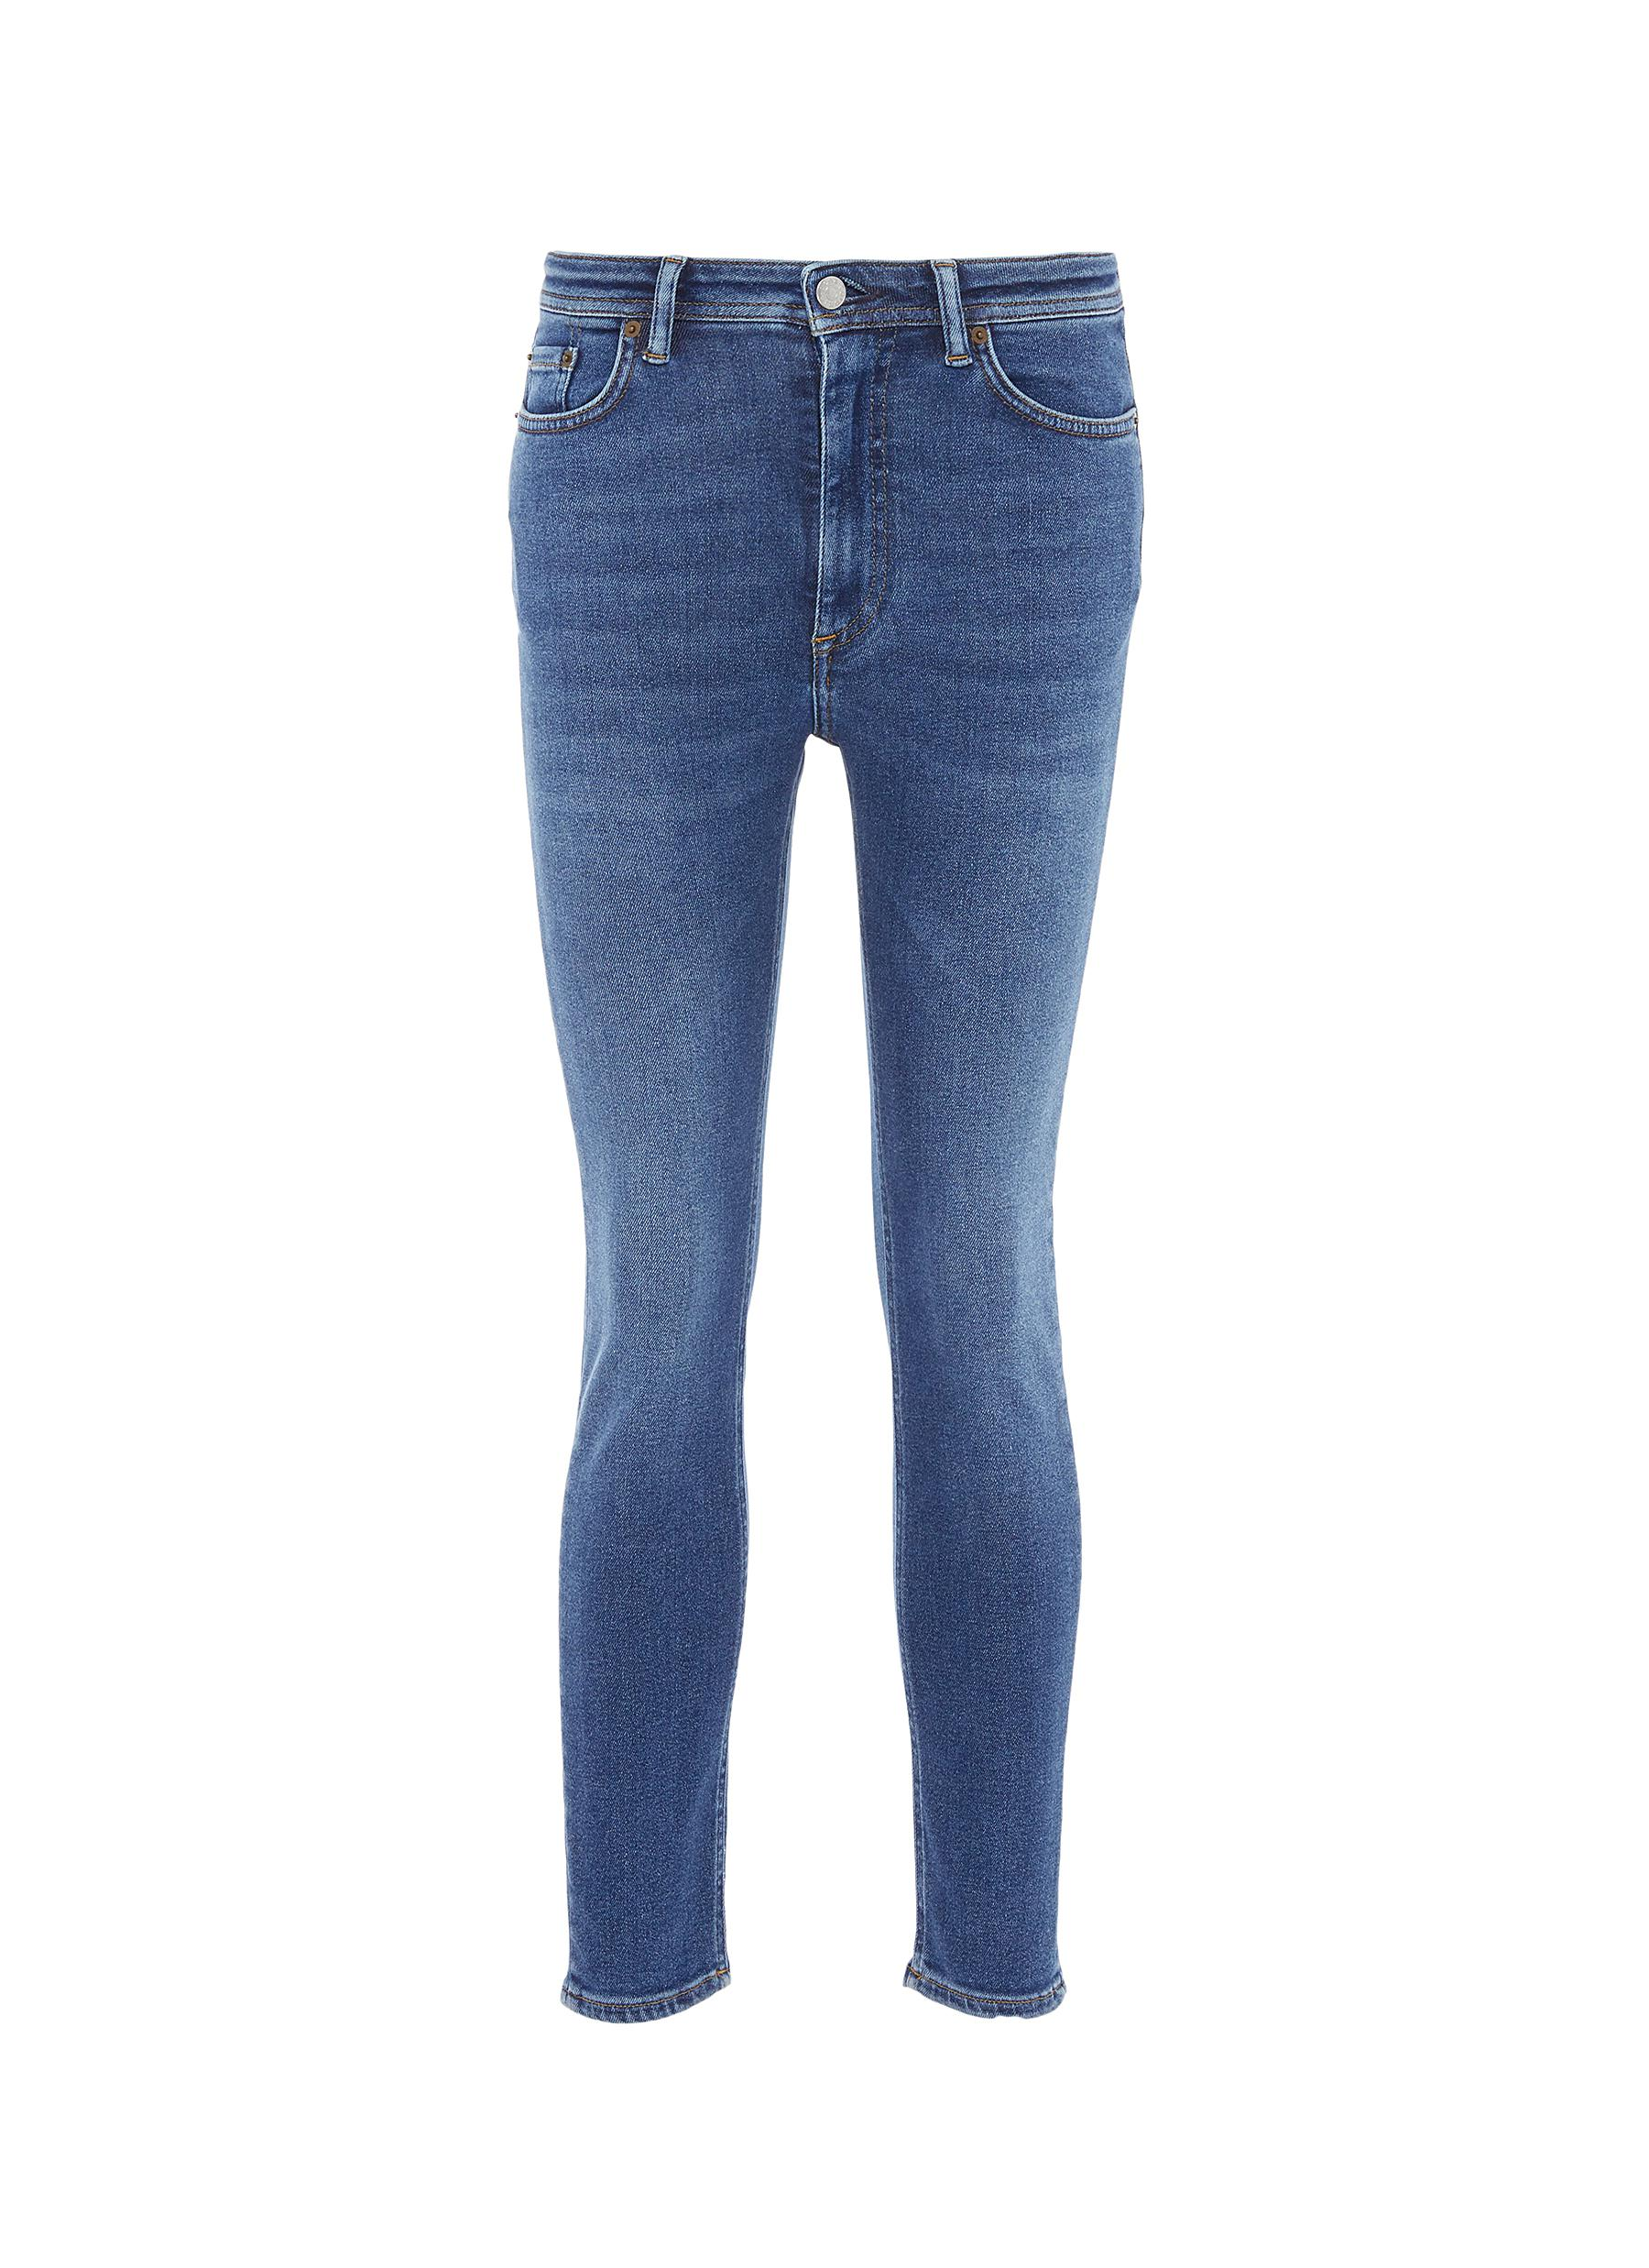 Washed skinny jeans by Acne Studios